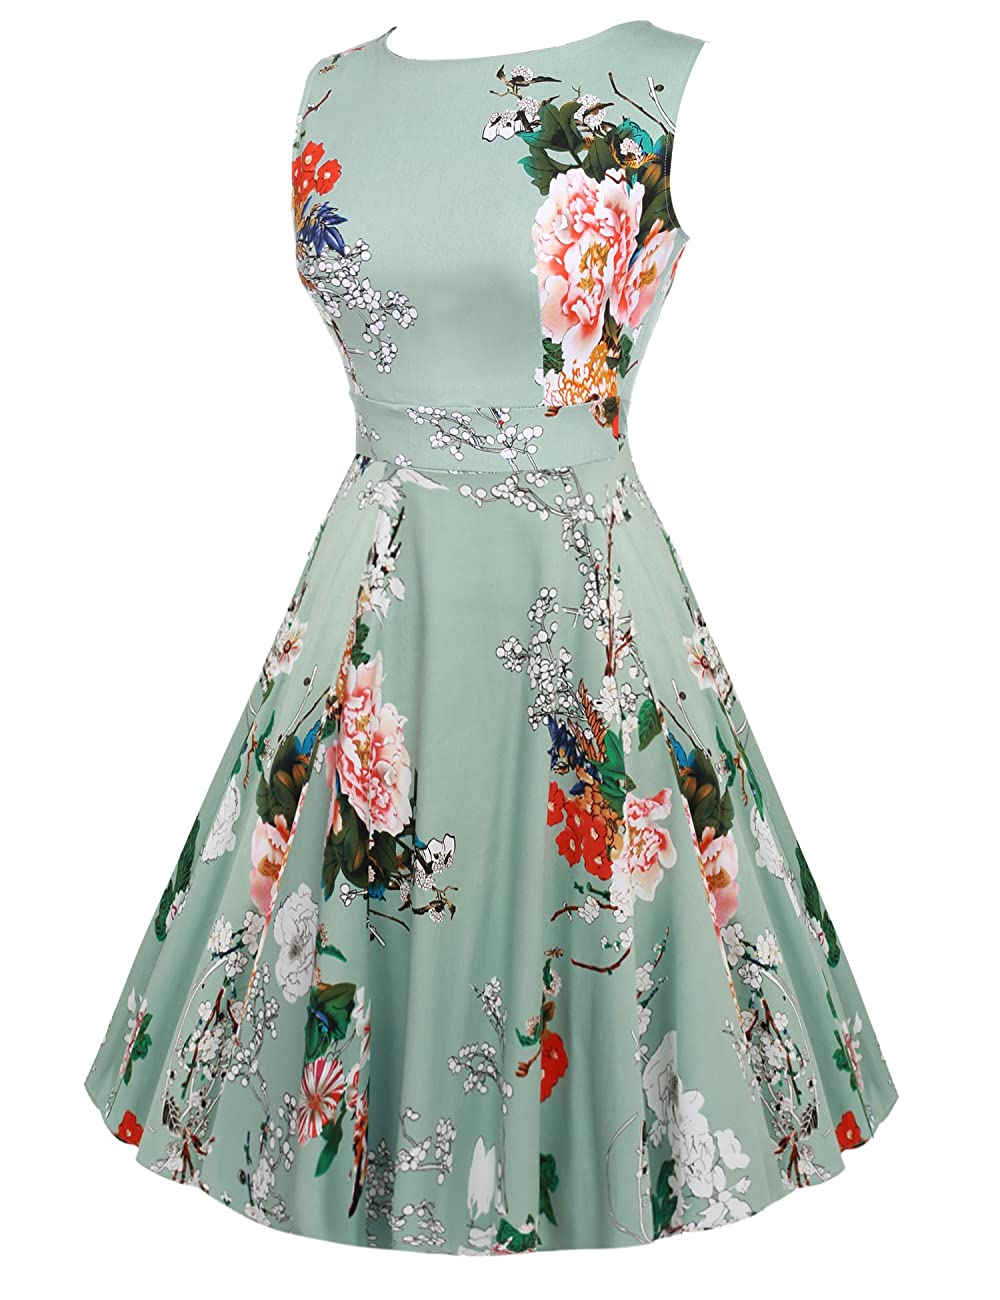 ACEVOG Vintage 1950's Floral Spring Garden Party Picnic Dress Party Cocktail Dress 2